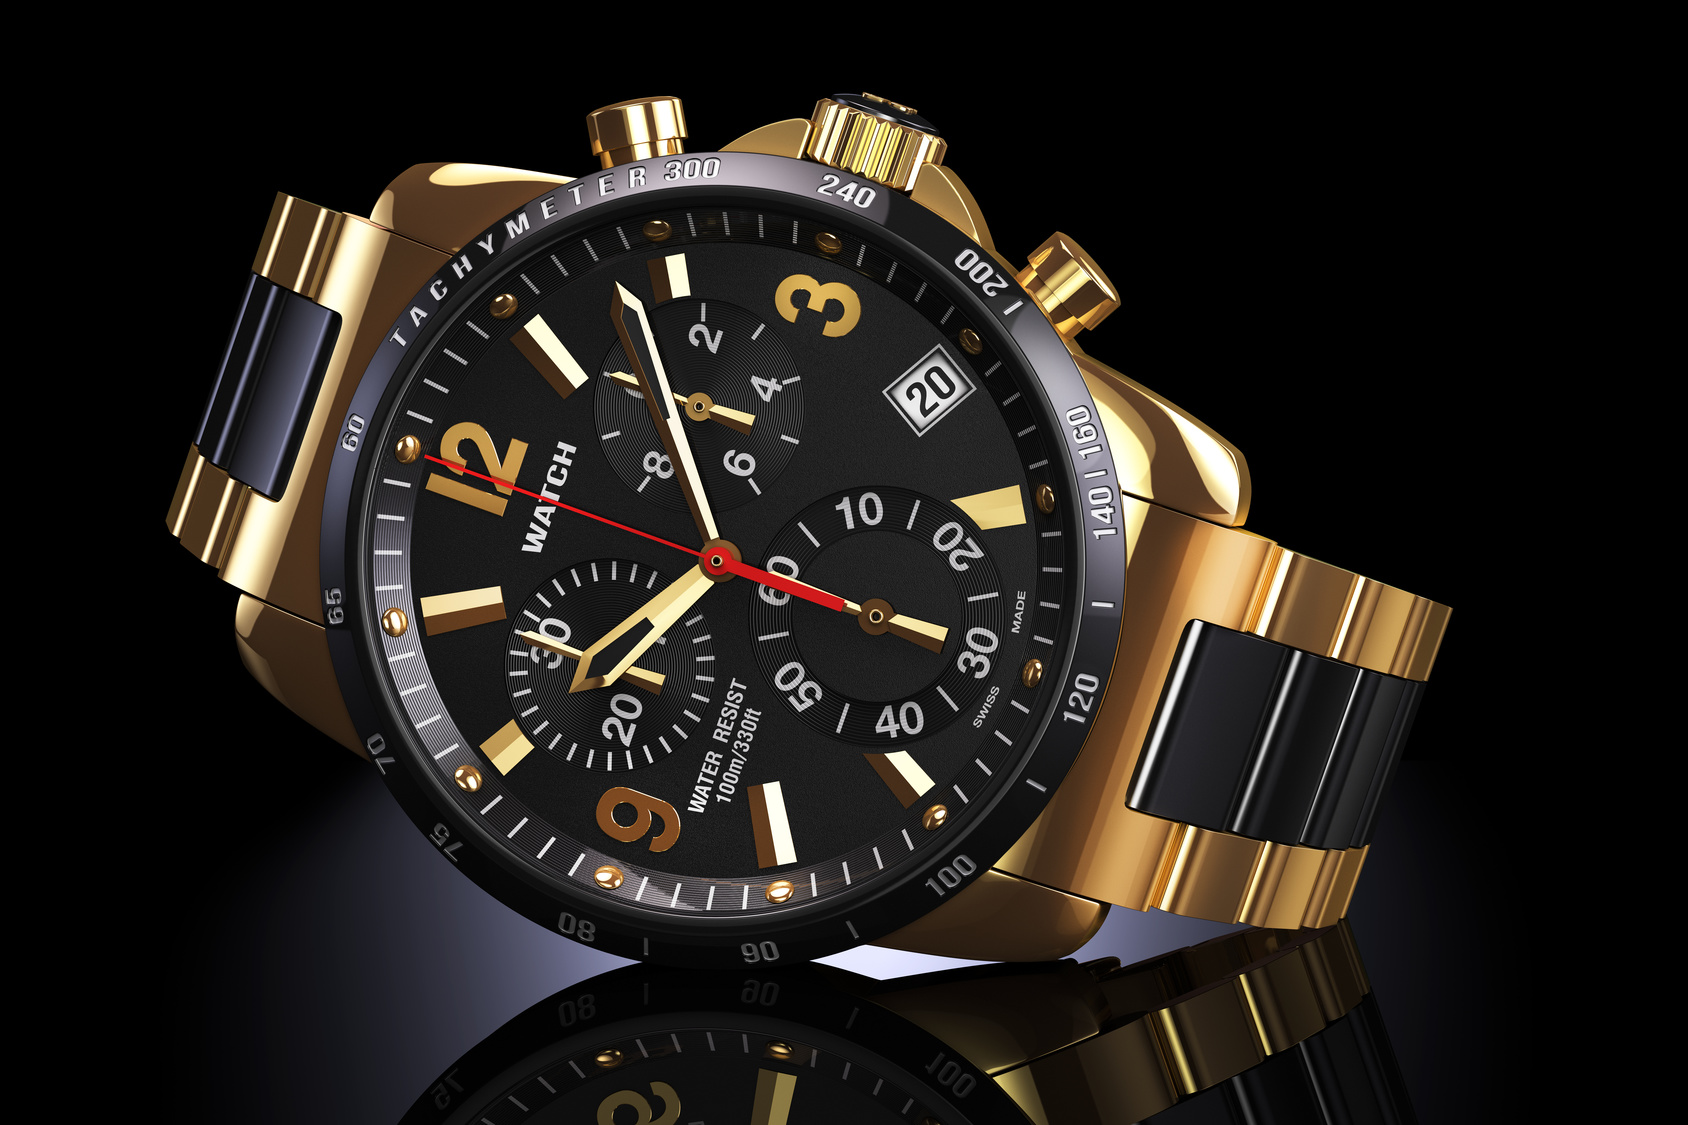 Mens swiss mechanical golden wrist watch with gold wristband and black dial, tachymeter, chronograph on dark reflection plane. Illustration 3d